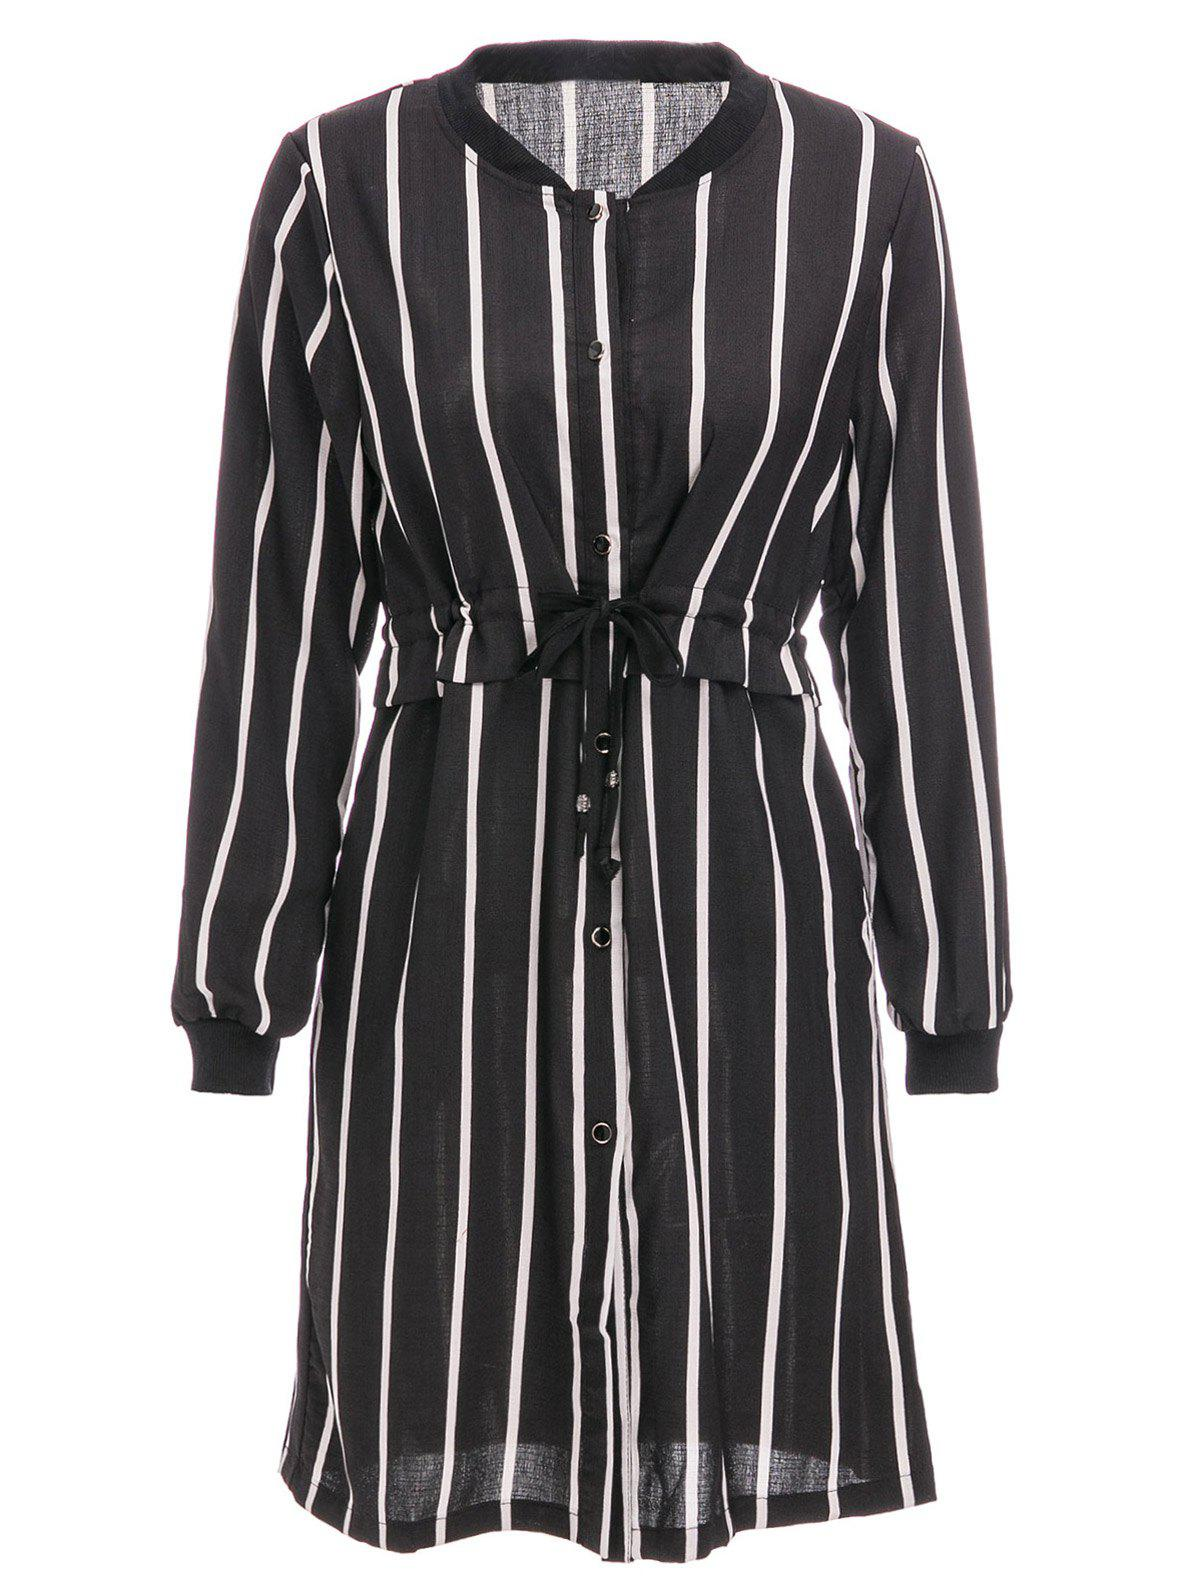 Brief Women's Stand Collar Vertical Stripe Long Sleeve Dress - BLACK XL